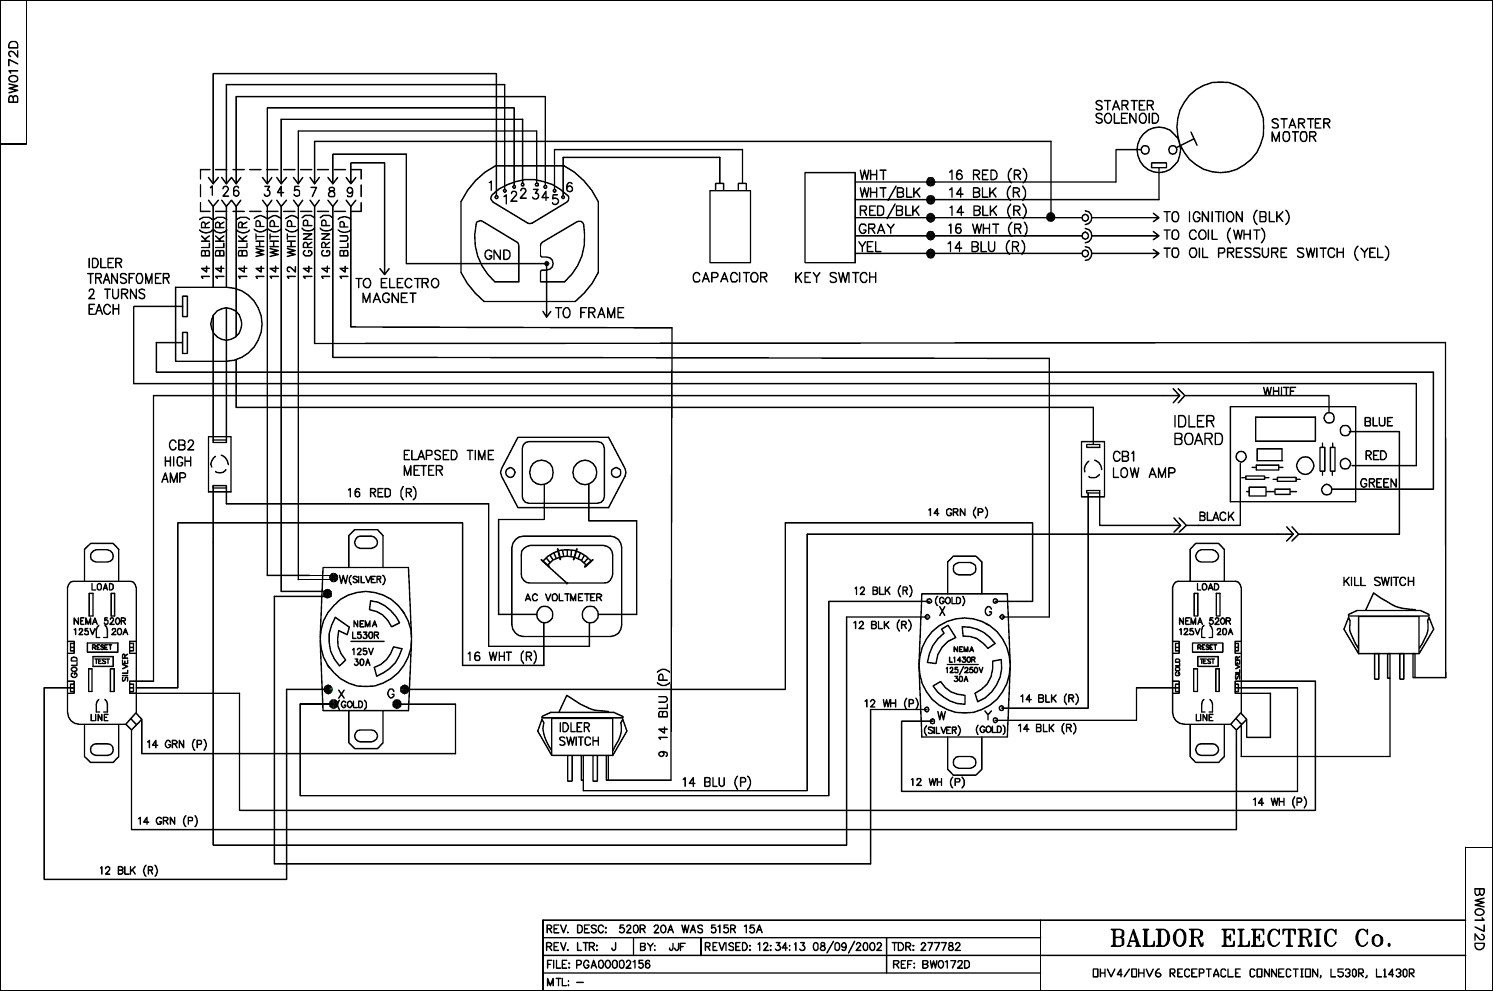 57613adc 784e 4285 92b2 5a85f0a04f5a bg1e page 30 of baldor portable generator 3kw 9kw user guide portable generator wiring schematic at aneh.co